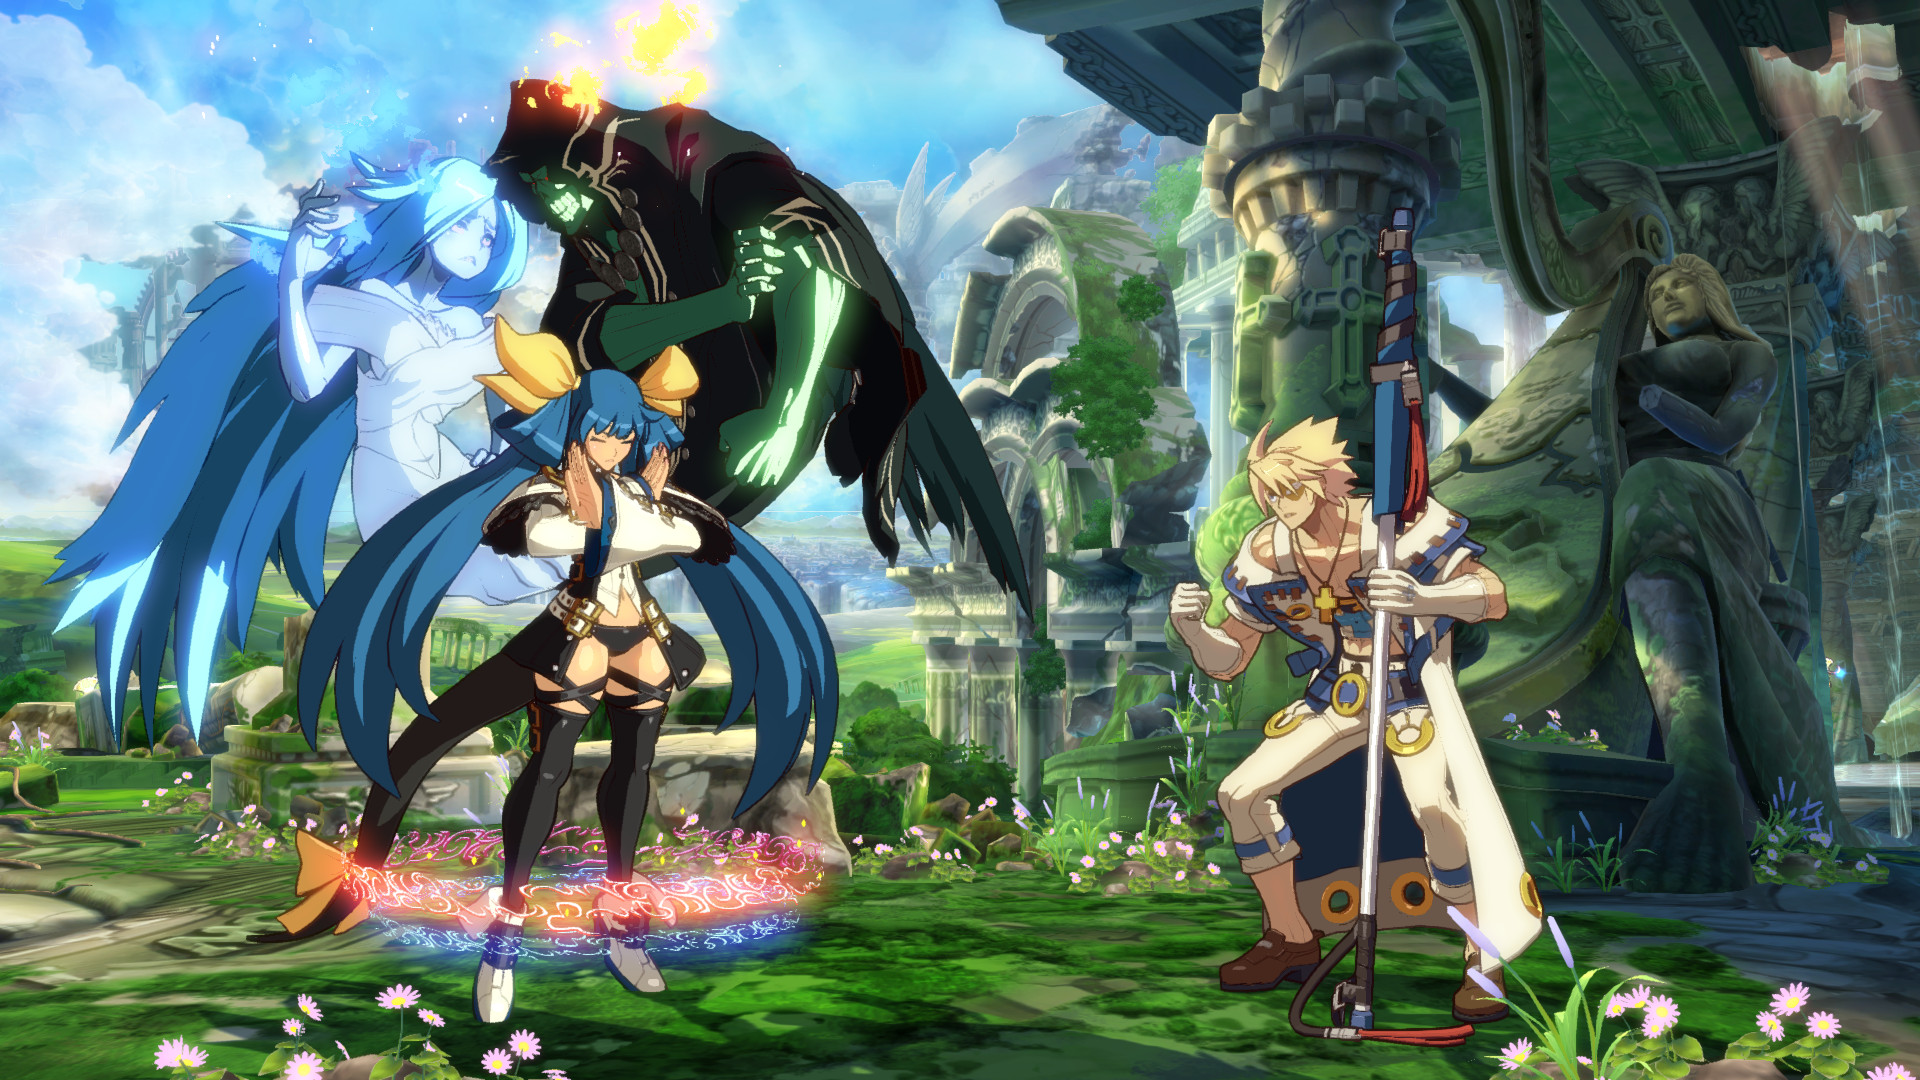 Guilty-Gear-Xrd-Revelator-dizzy-screenshot- (2)